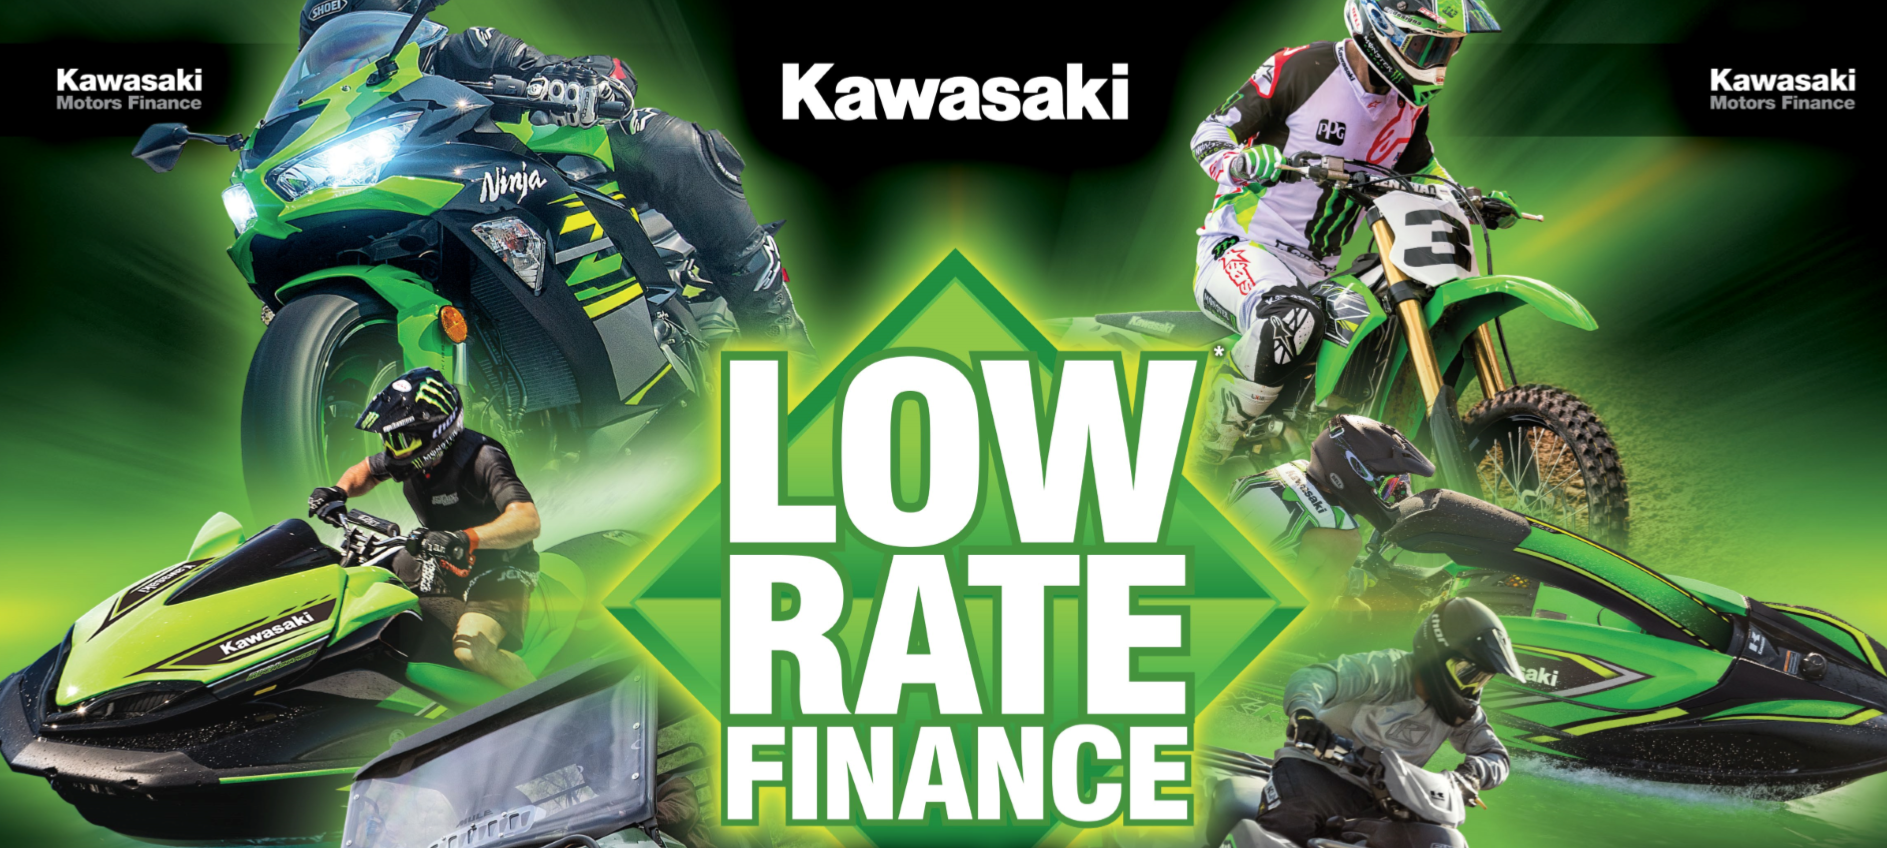 Kawasaki Low rate finance offer